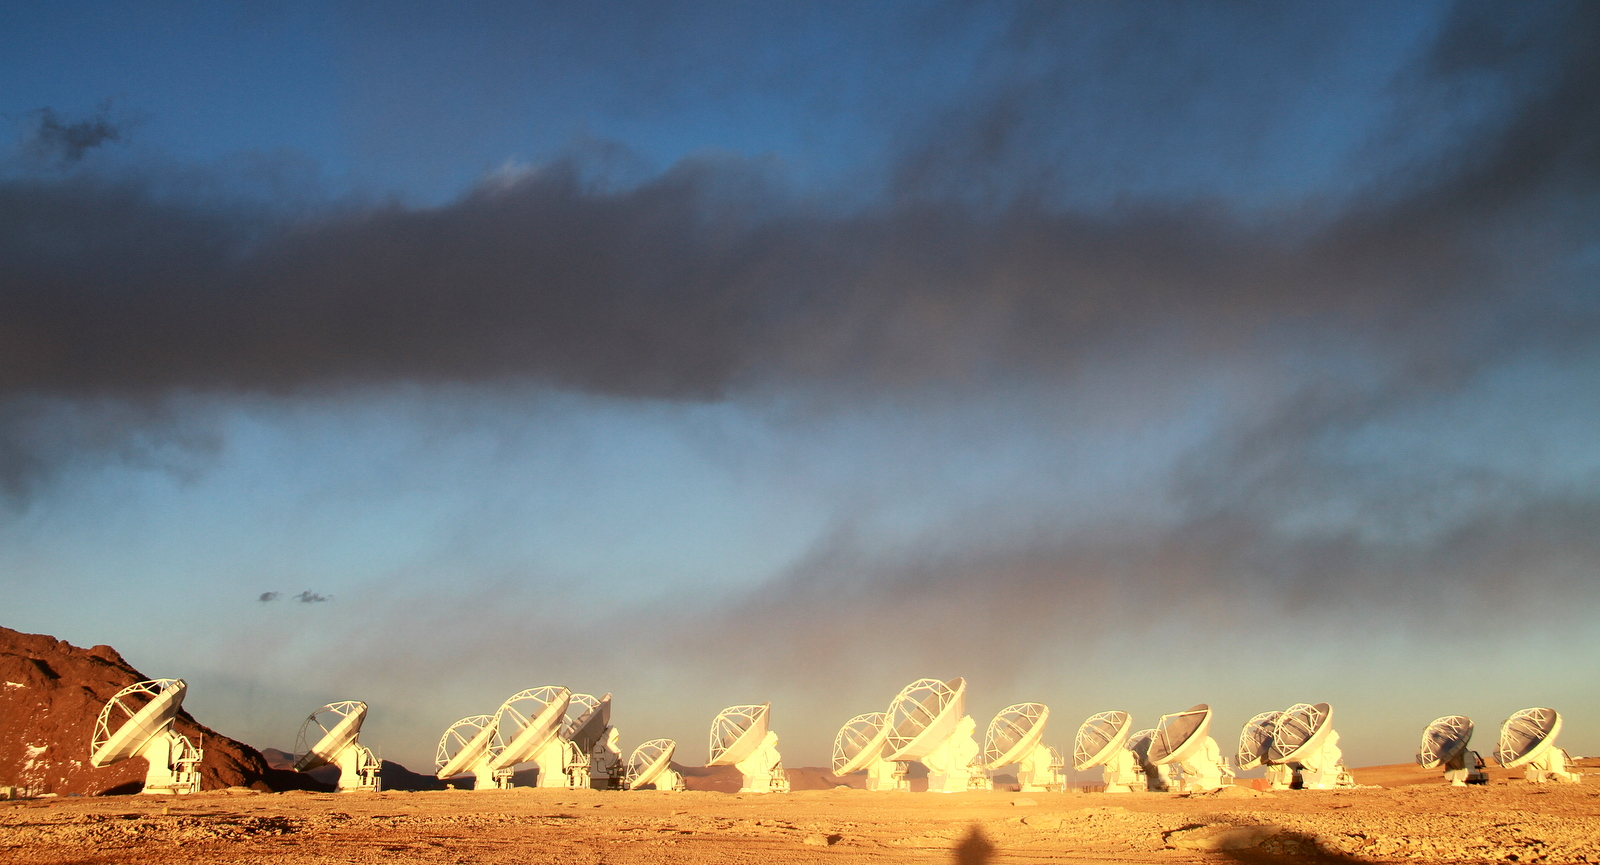 ALMA Arrayphoto by Jaime Guarda 7 Aug 2011 c ESO/NAOJ/NRAO